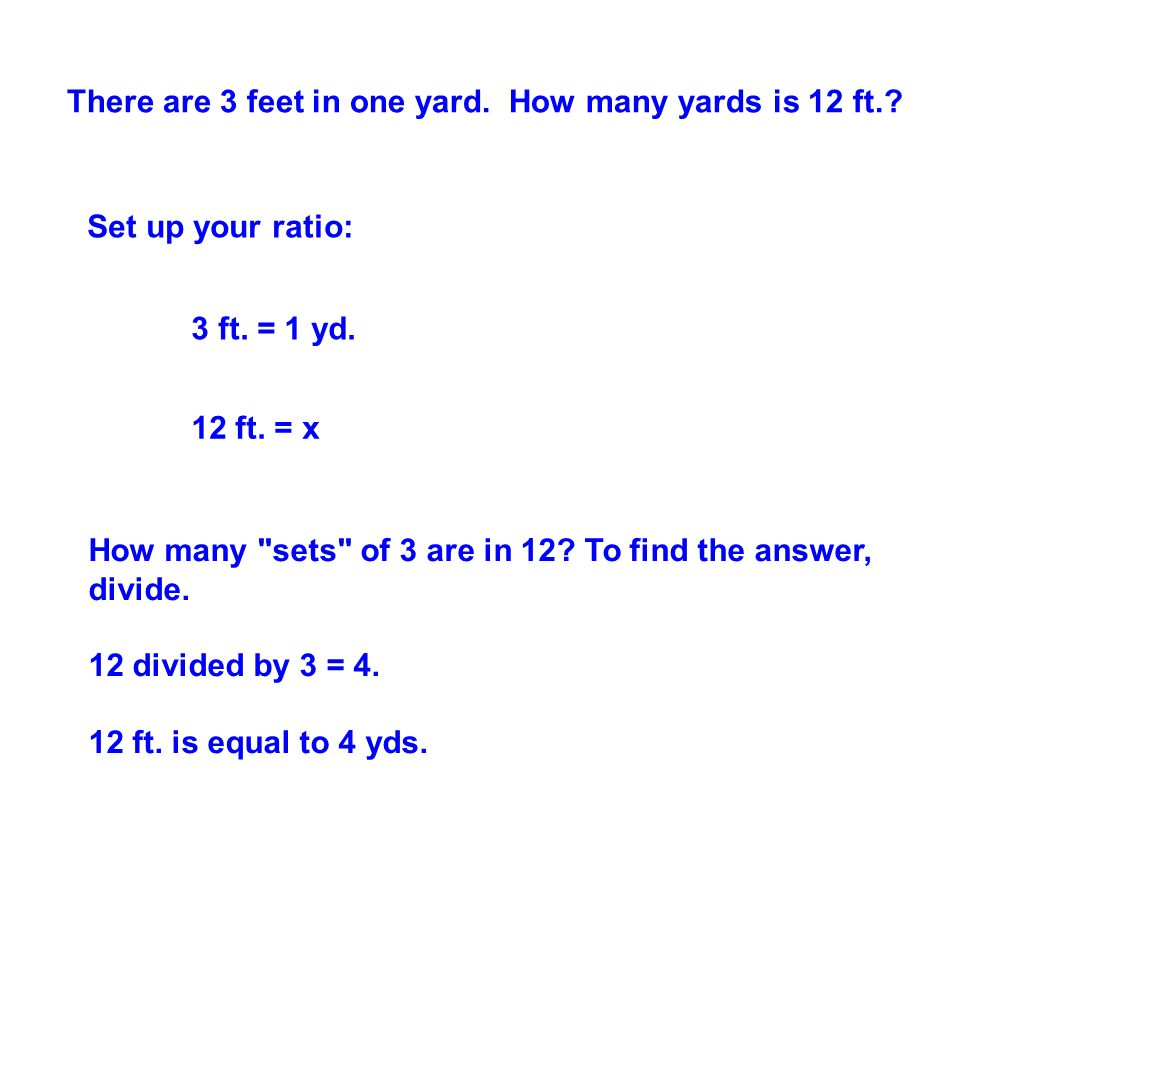 There are 3 feet in one yard. How many yards is 12 ft..